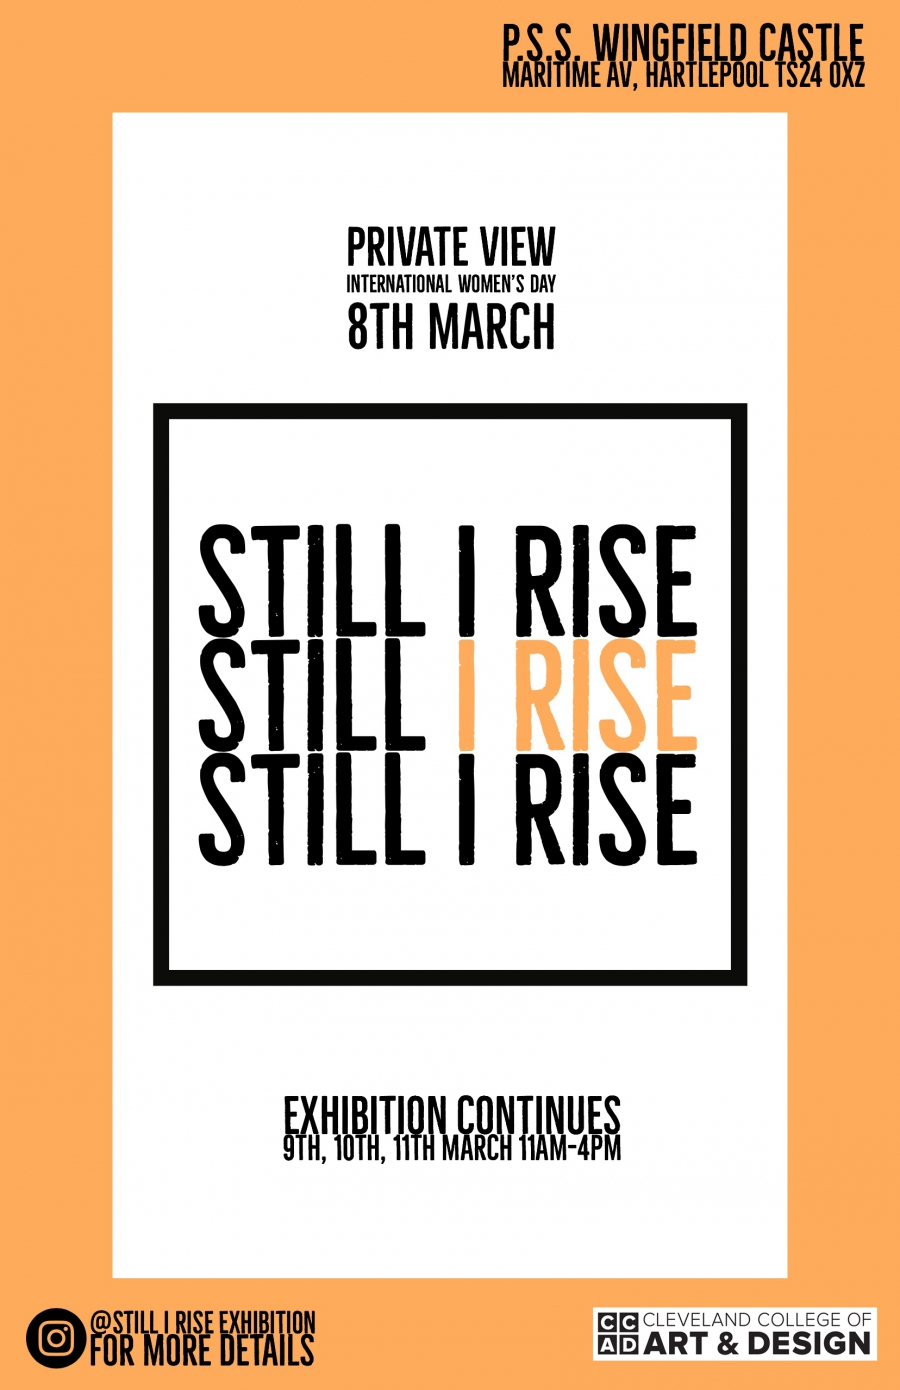 Fine Art Students Rise To The Challenge With Inspirational Exhibition On P.S.S. Wingfield Castle Image